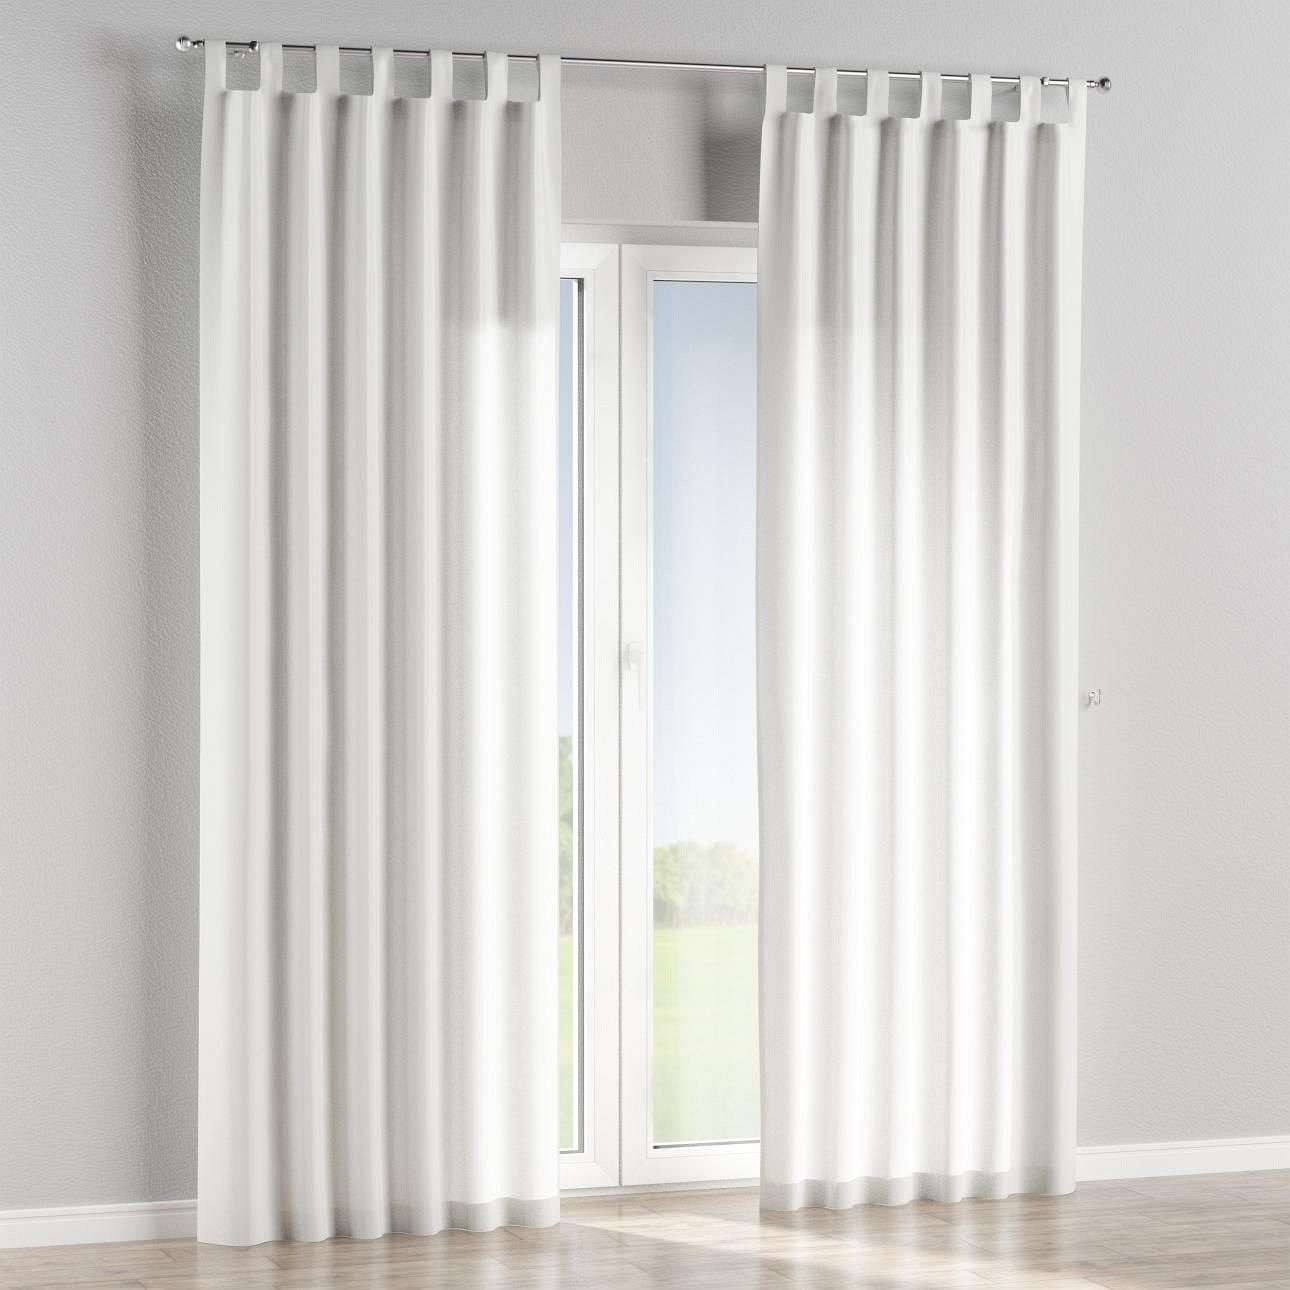 Tab top curtains in collection Norge, fabric: 140-84